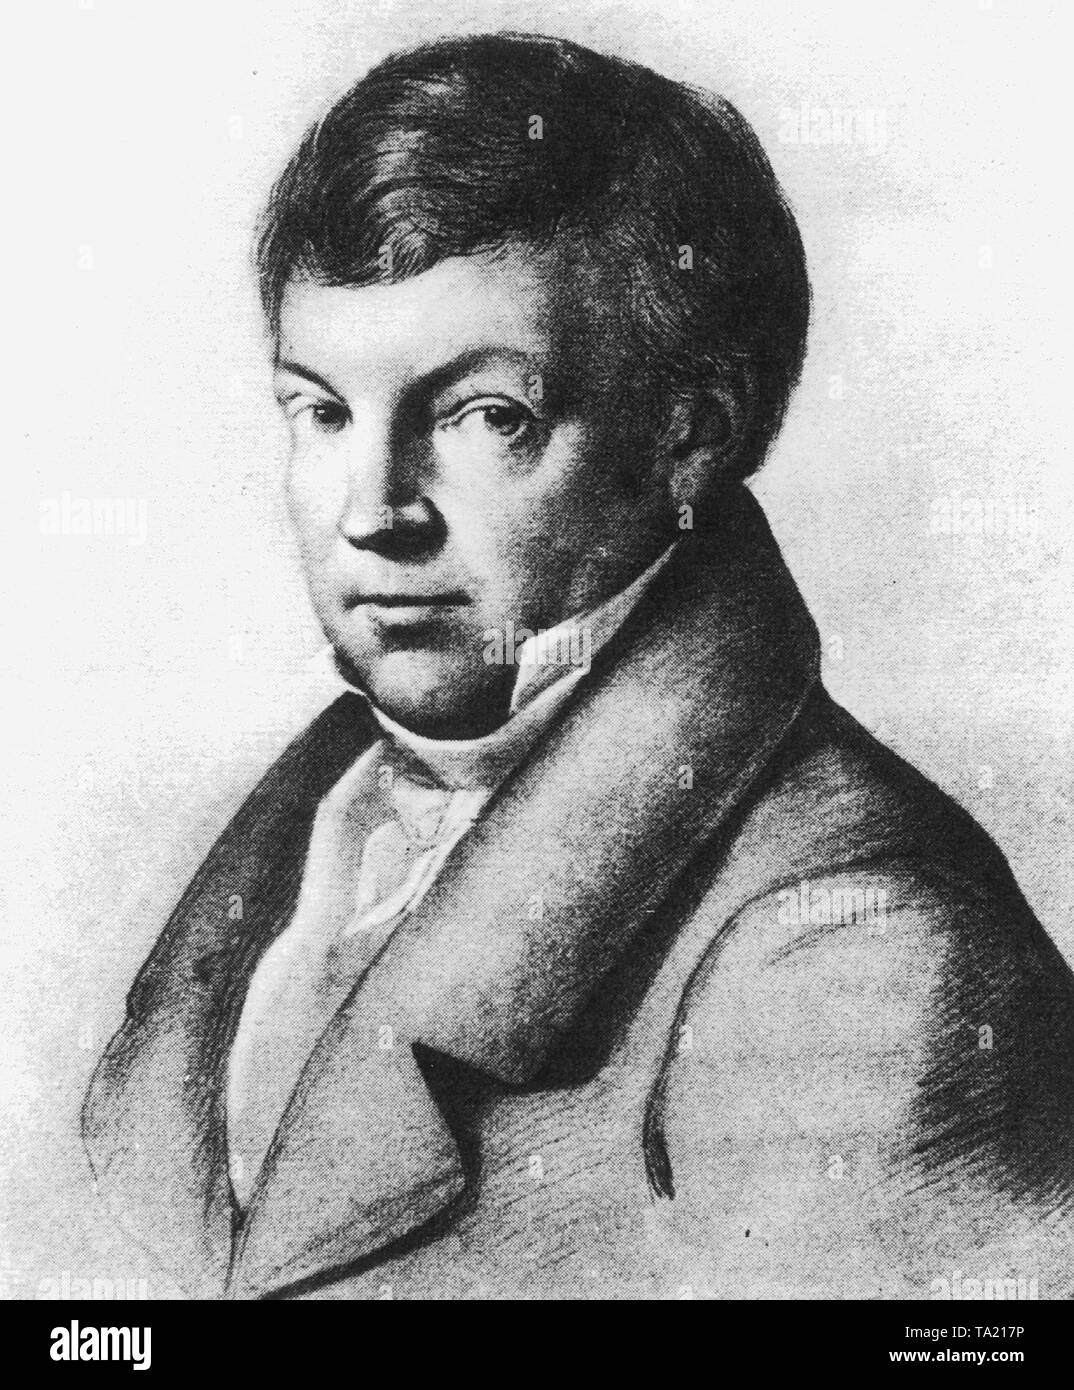 Sulpiz Boisseree (1783-1854), an art scholar and art collector who campaigned, together with his brother Melchior, for the completion of the Cologne Cathedral. Their important collection of German and Dutch paintings from the Middle Ages was acquired in 1827 by King Ludwig I of Bavaria for the Alte Pinakothek in Munich. - Stock Image